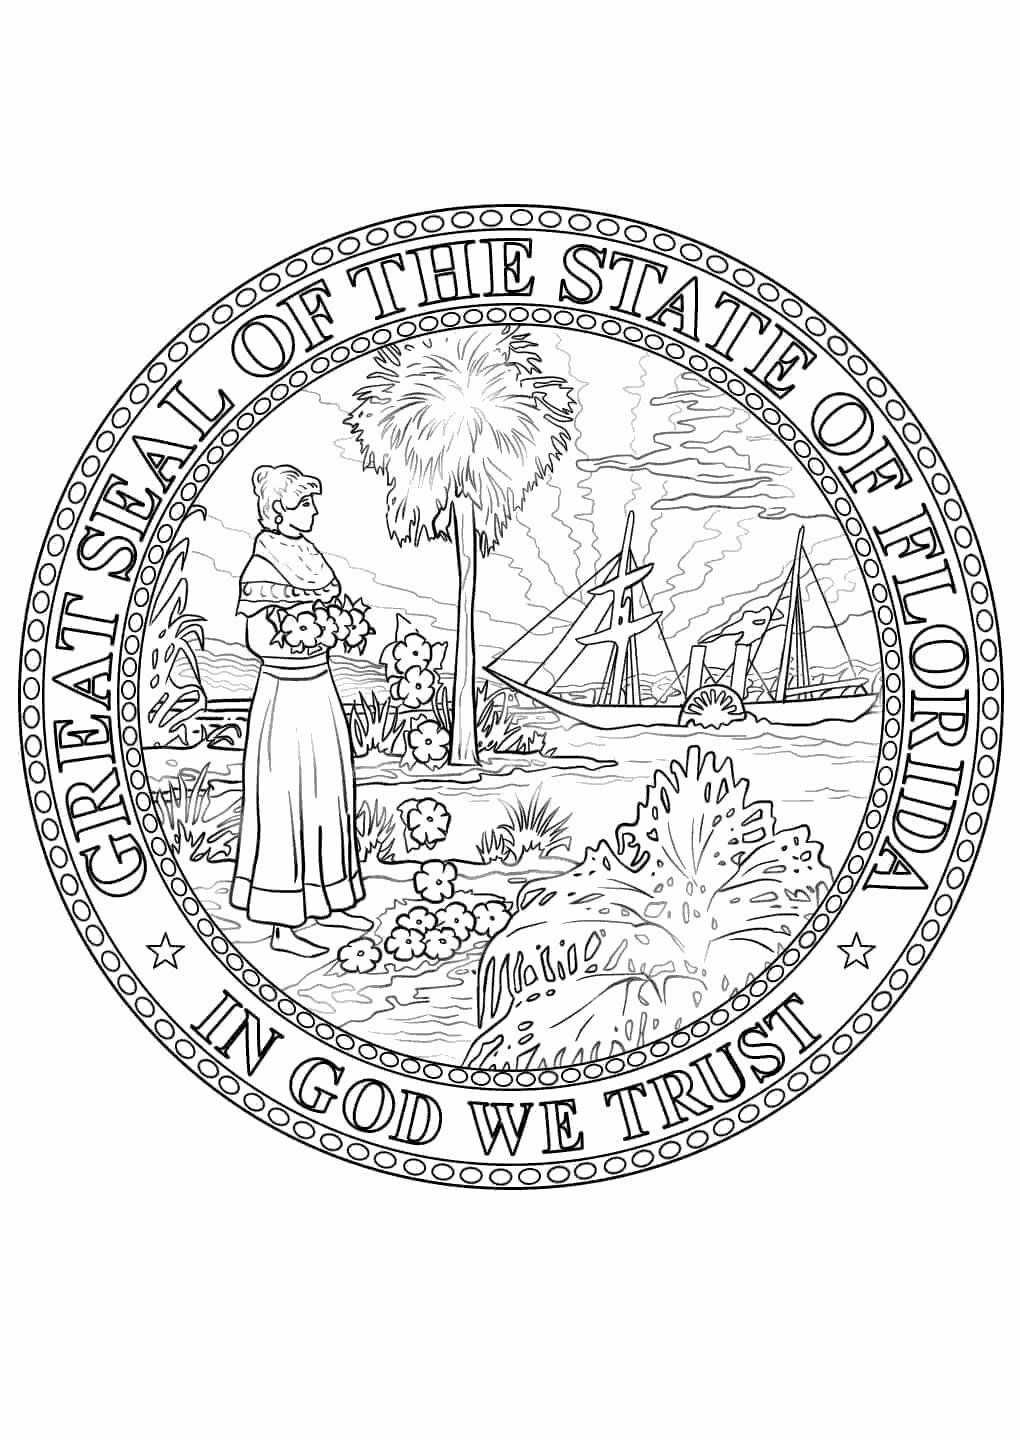 virginia state flag coloring page virginia state flag coloring page in 2020 flag coloring virginia coloring flag state page